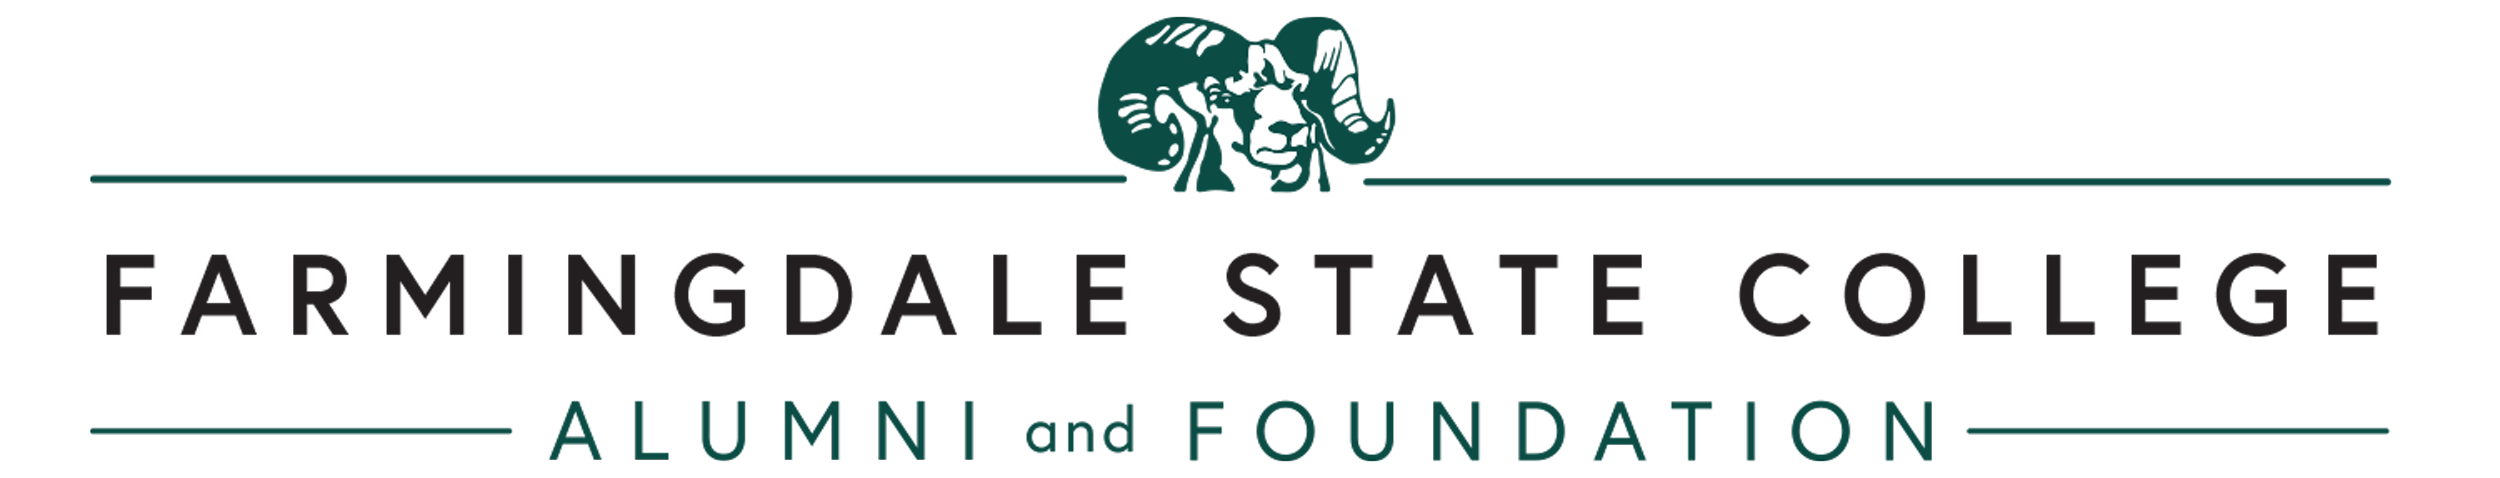 Farmingdale State College Alumni and Foundation